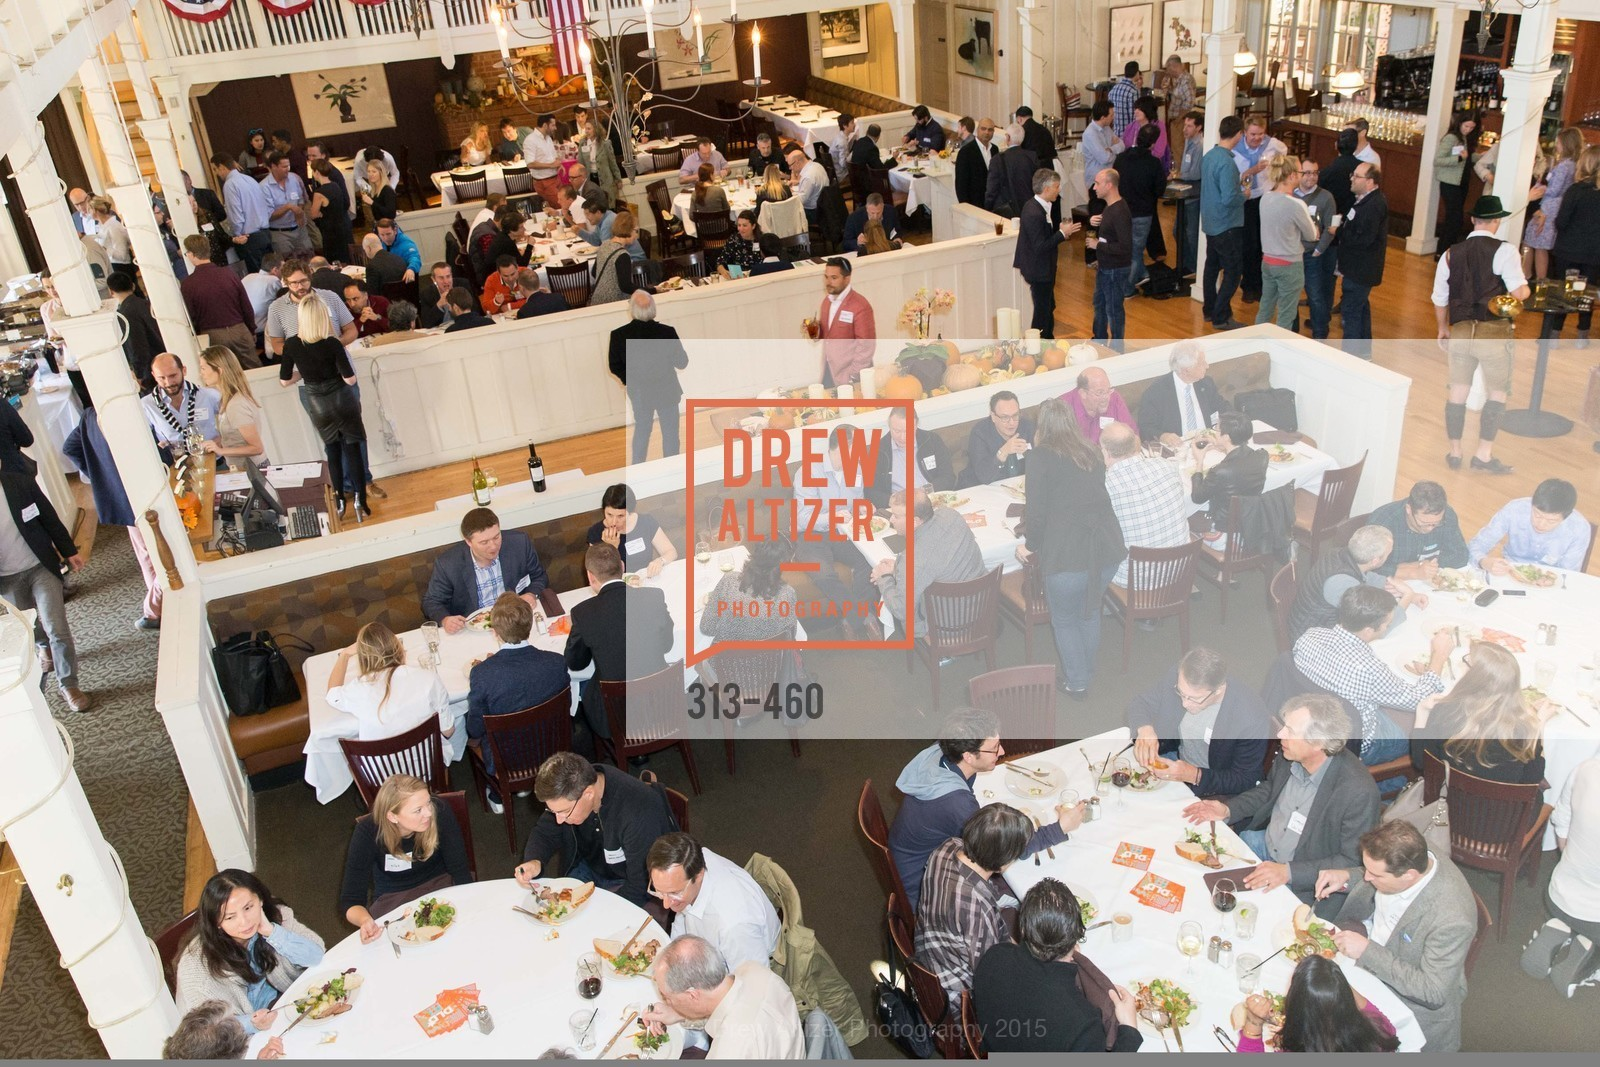 Atmosphere, DLD Palo Alto Luncheon, November 6th, 2015, Photo,Drew Altizer, Drew Altizer Photography, full-service agency, private events, San Francisco photographer, photographer california